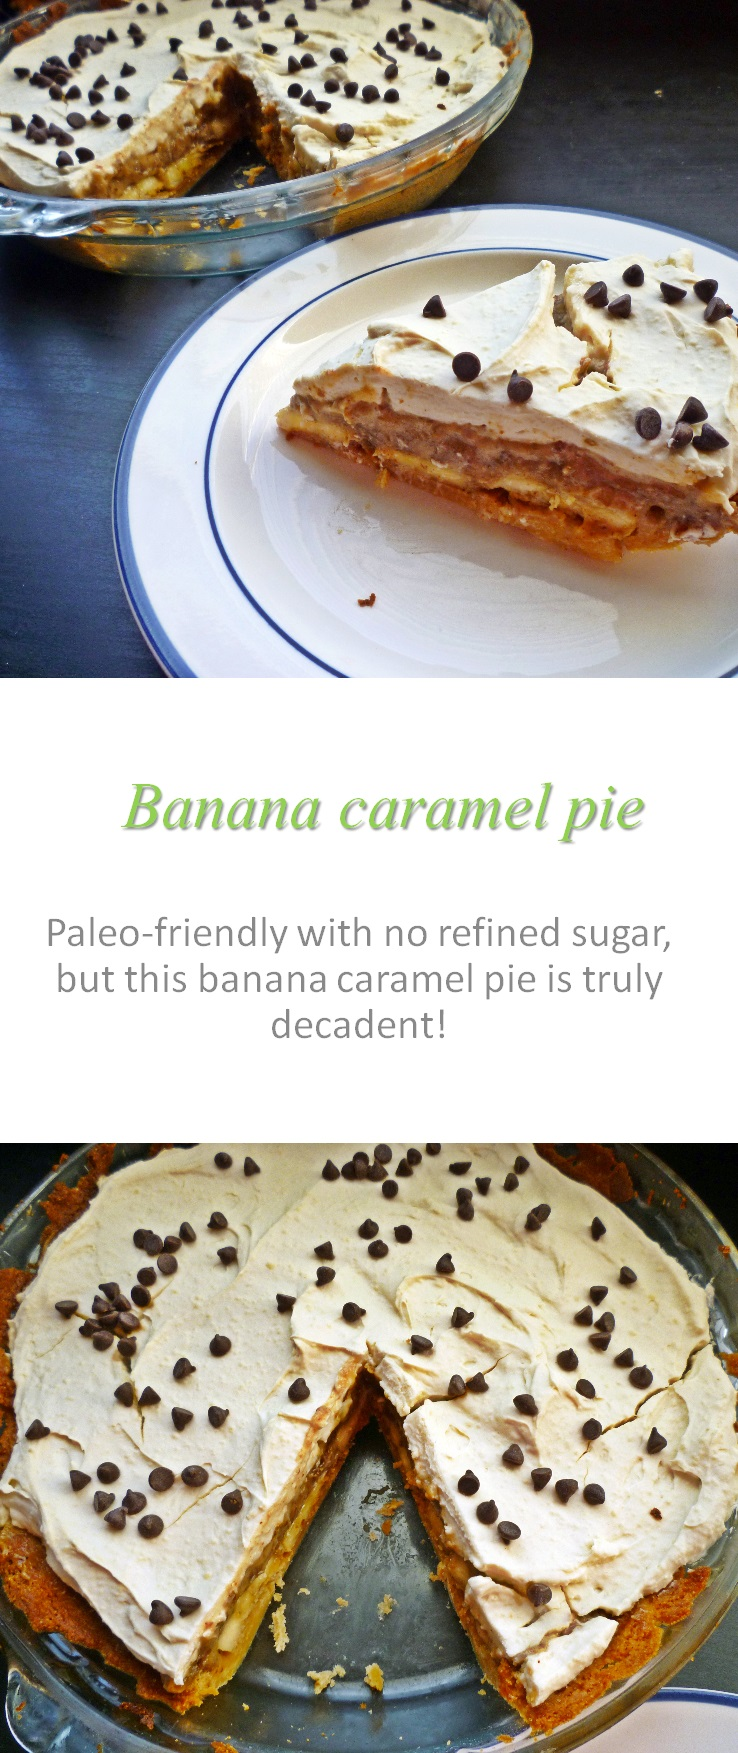 A treat for all ages - this Paleo-friendly banana caramel pie is only sweetened with dates, but is a hit with the whole family! #pie